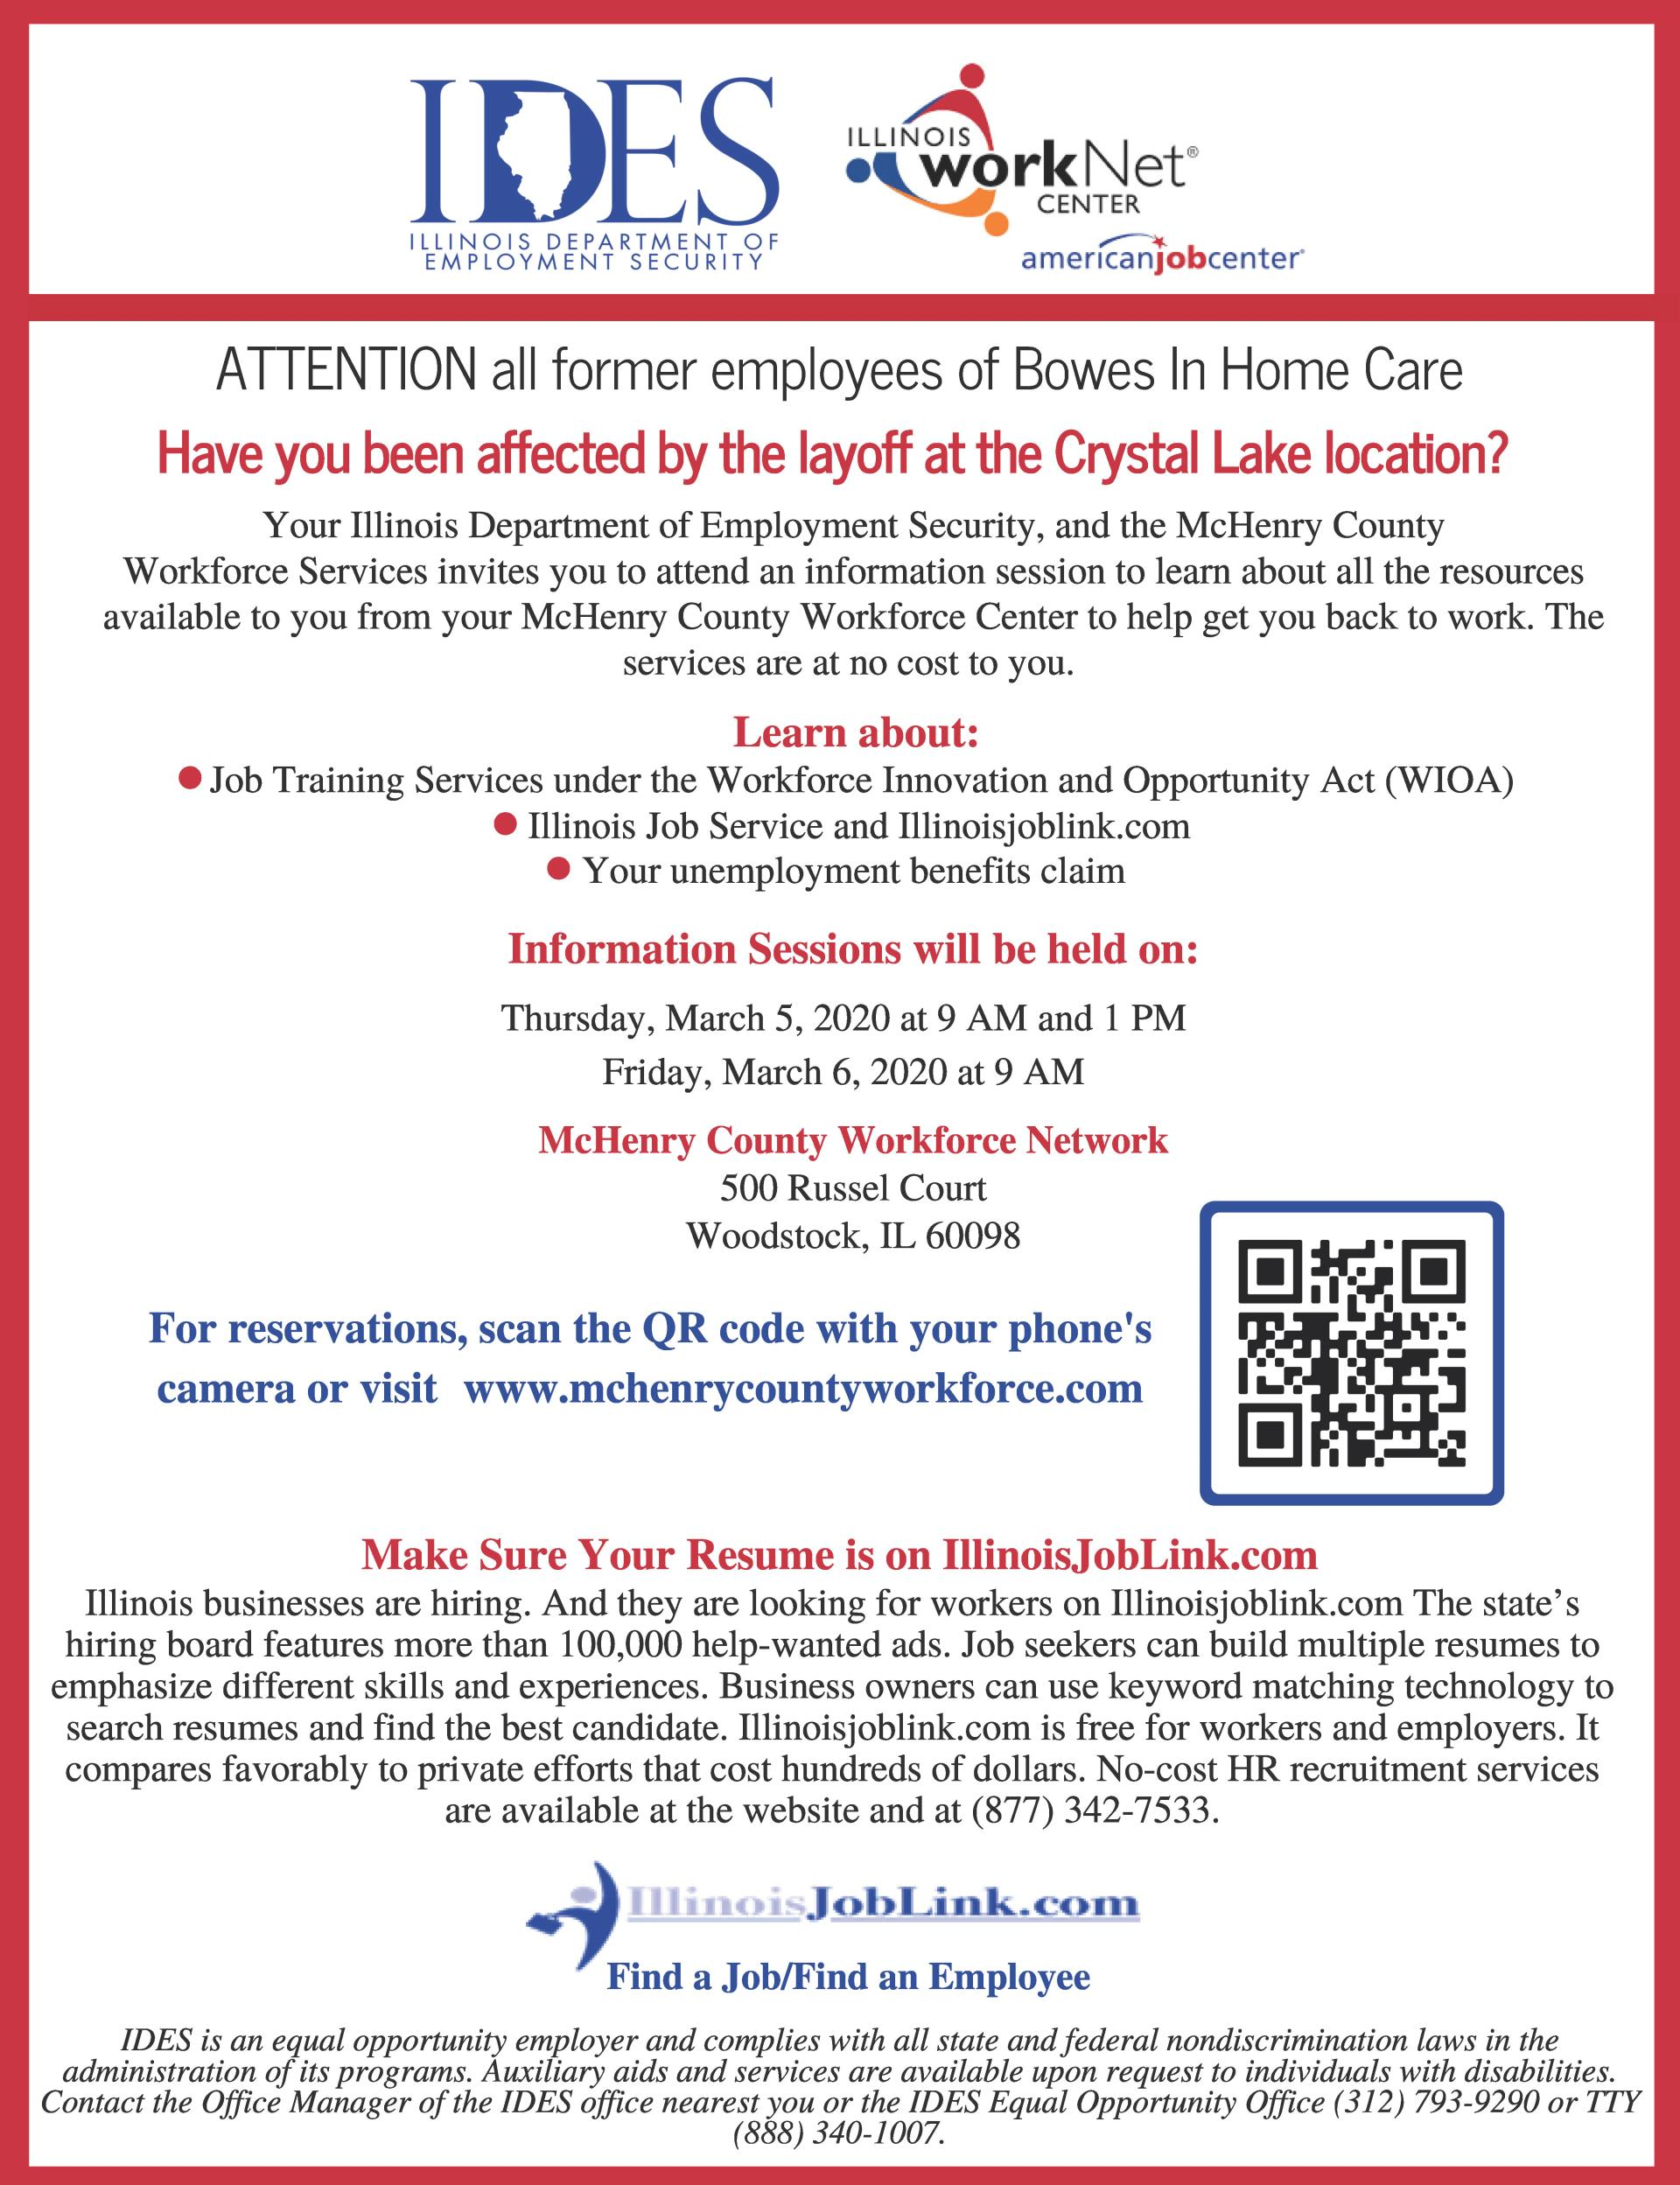 Bowes In Home Care Event